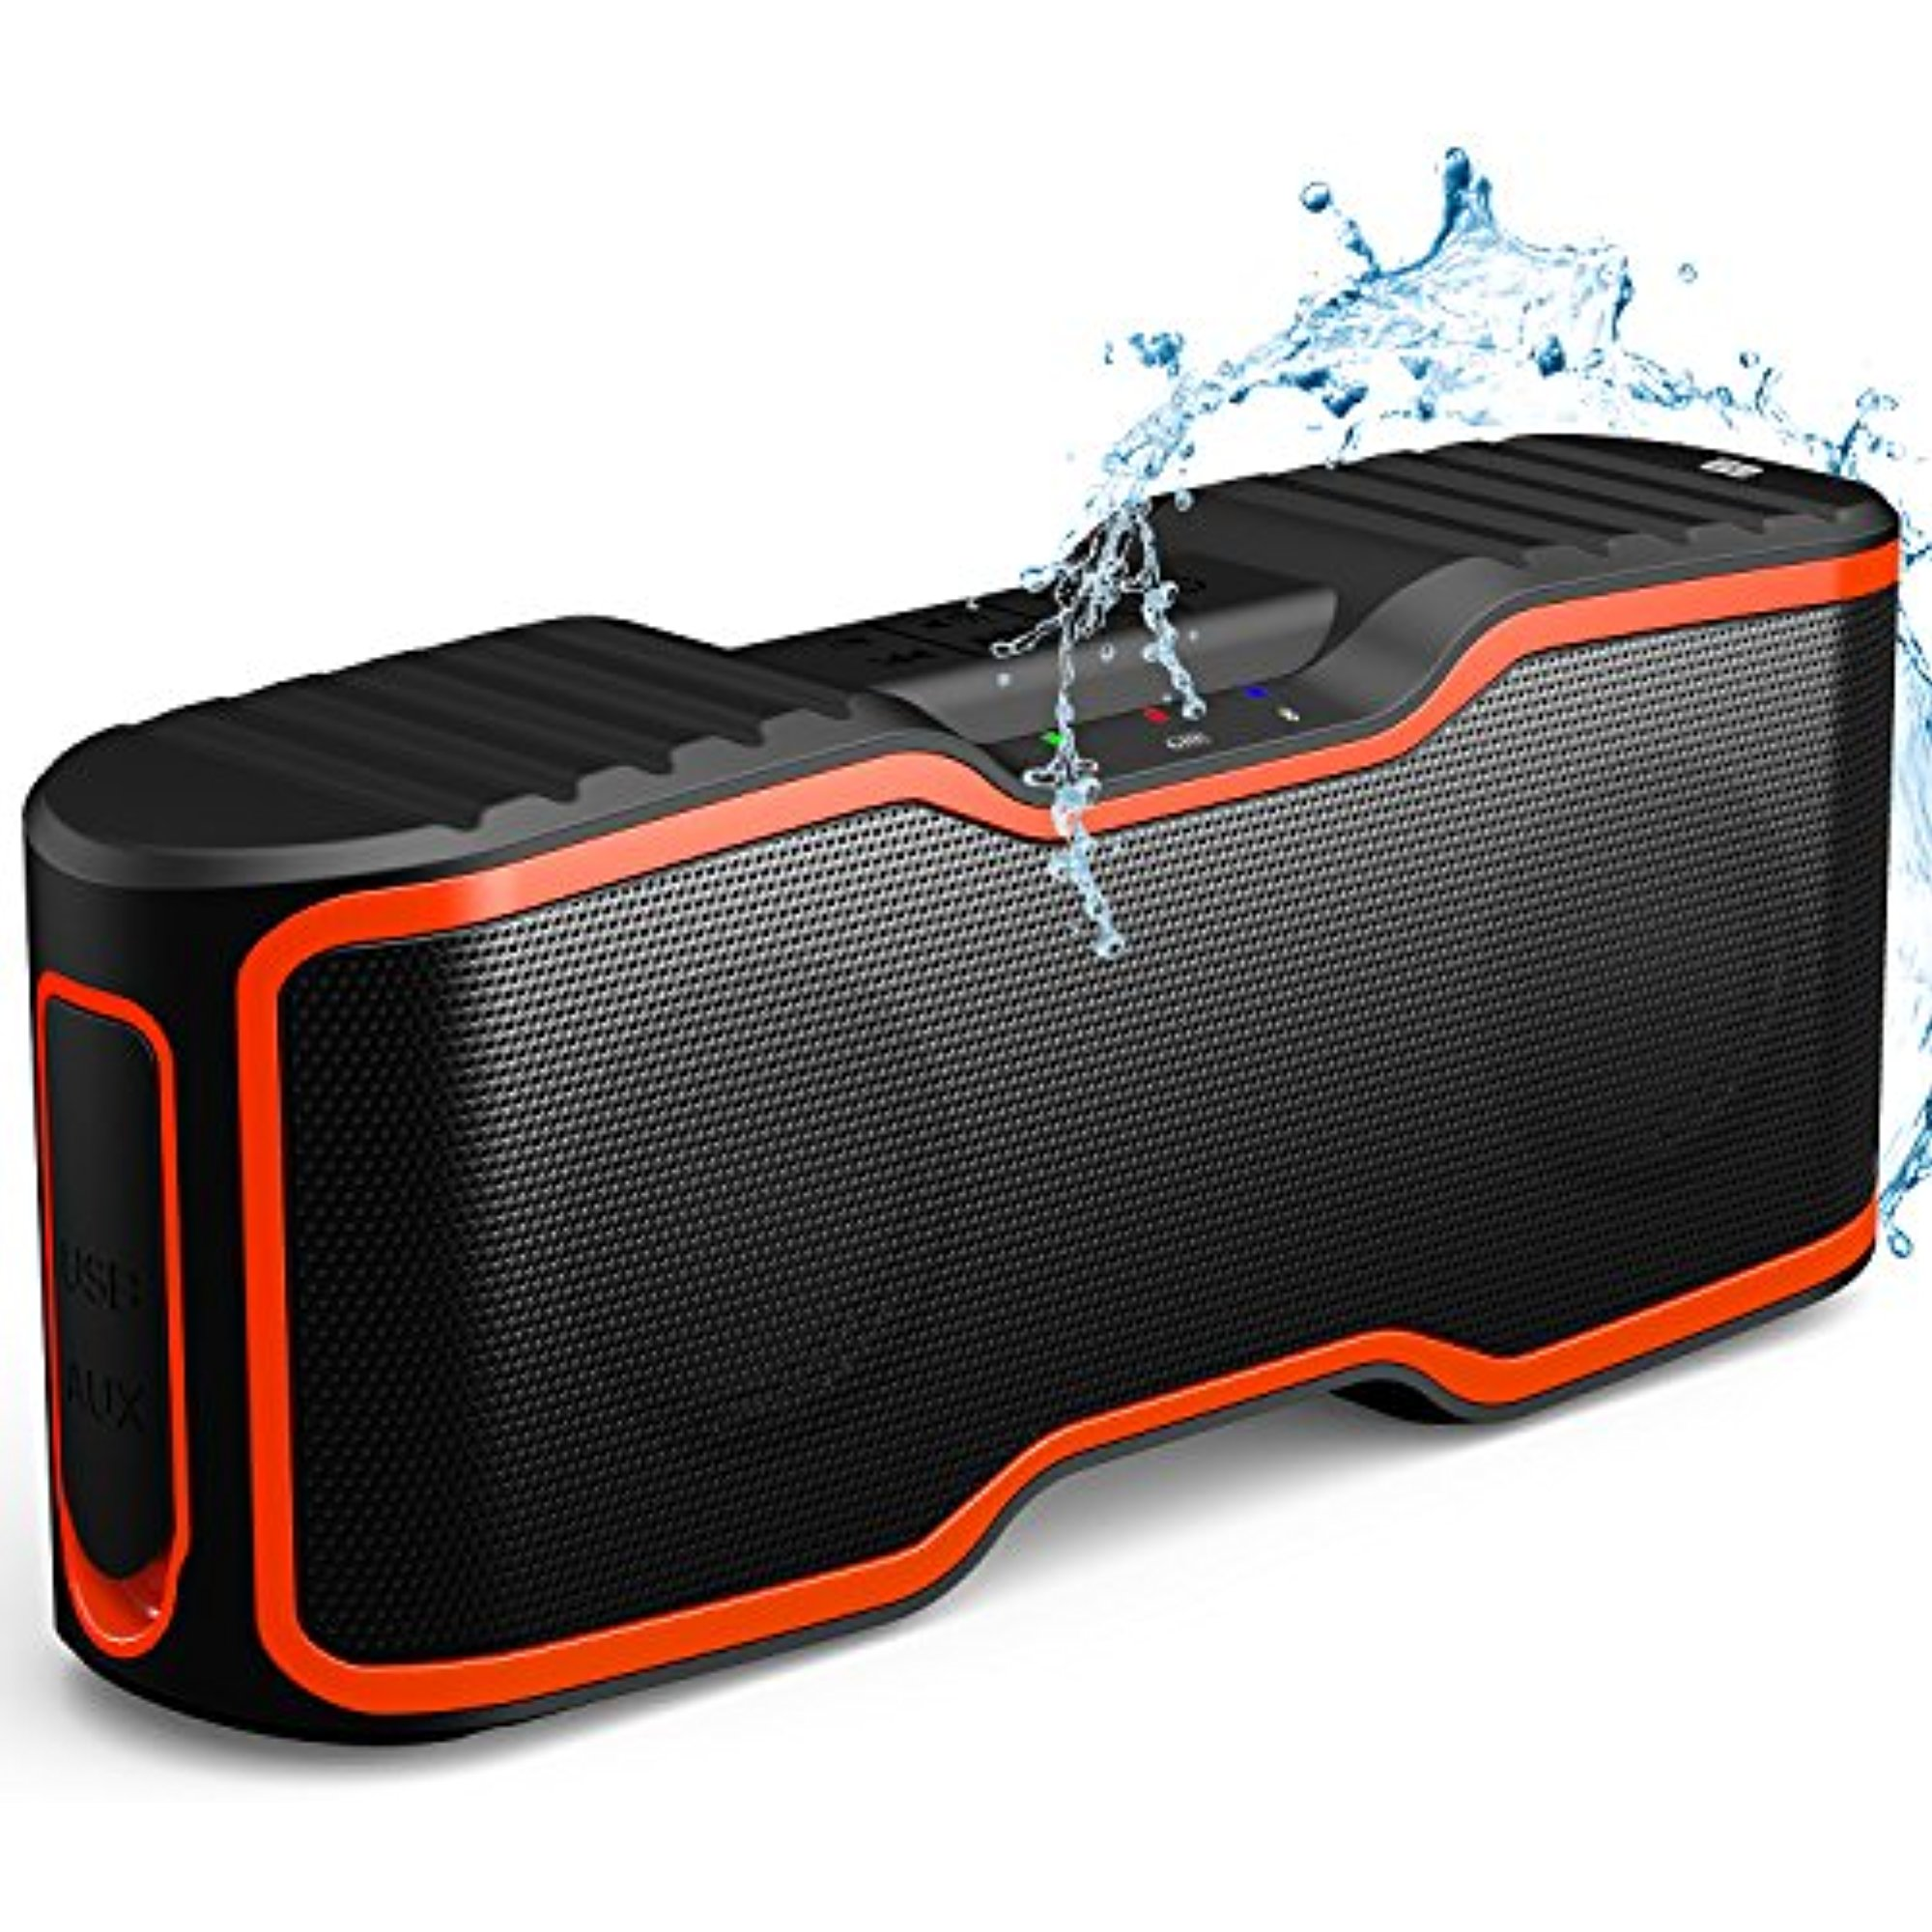 Captivating AOMAIS Sport II Portable Wireless Bluetooth Speakers 4.0 With Waterproof  IPX7,20W Bass Sound,